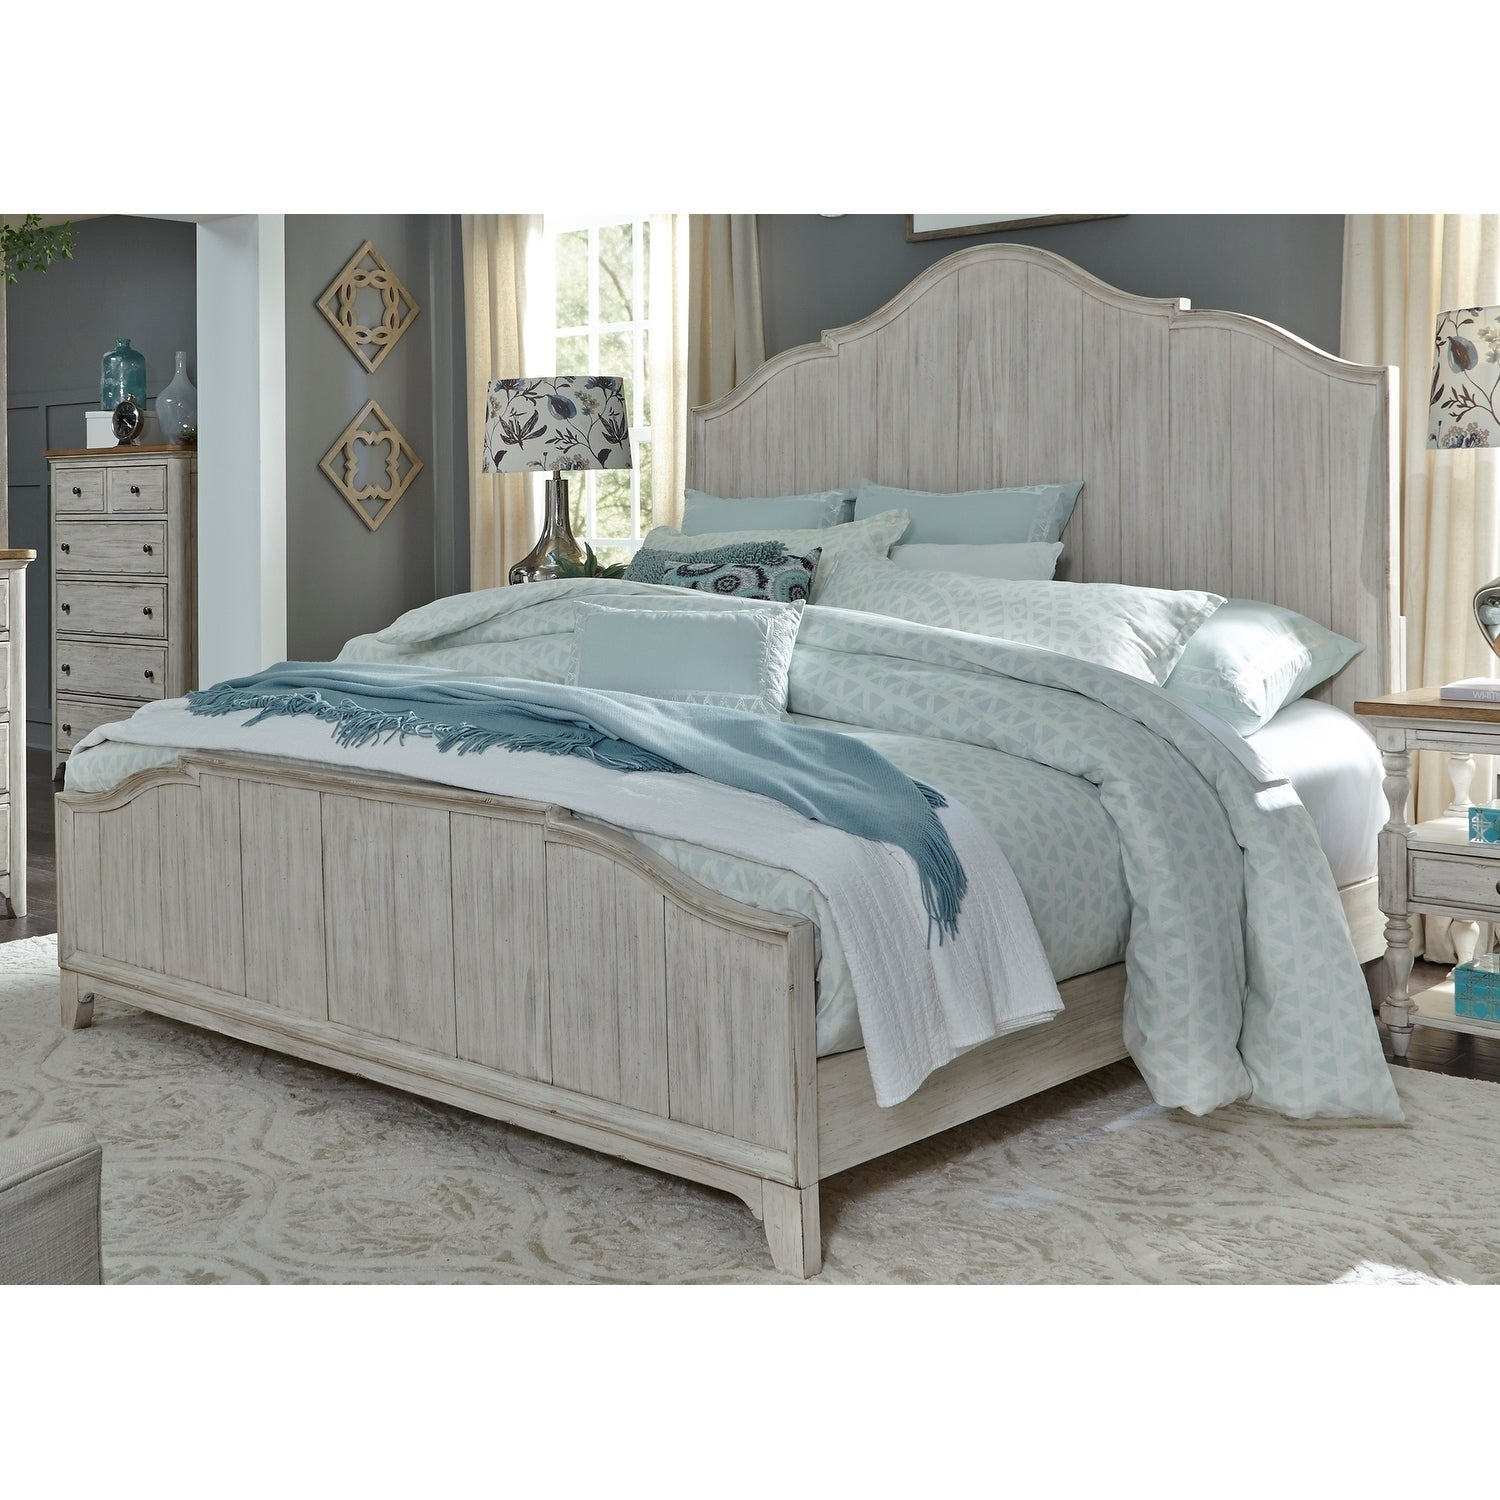 Farmhouse Reimagined Antique White Queen Panel Bed